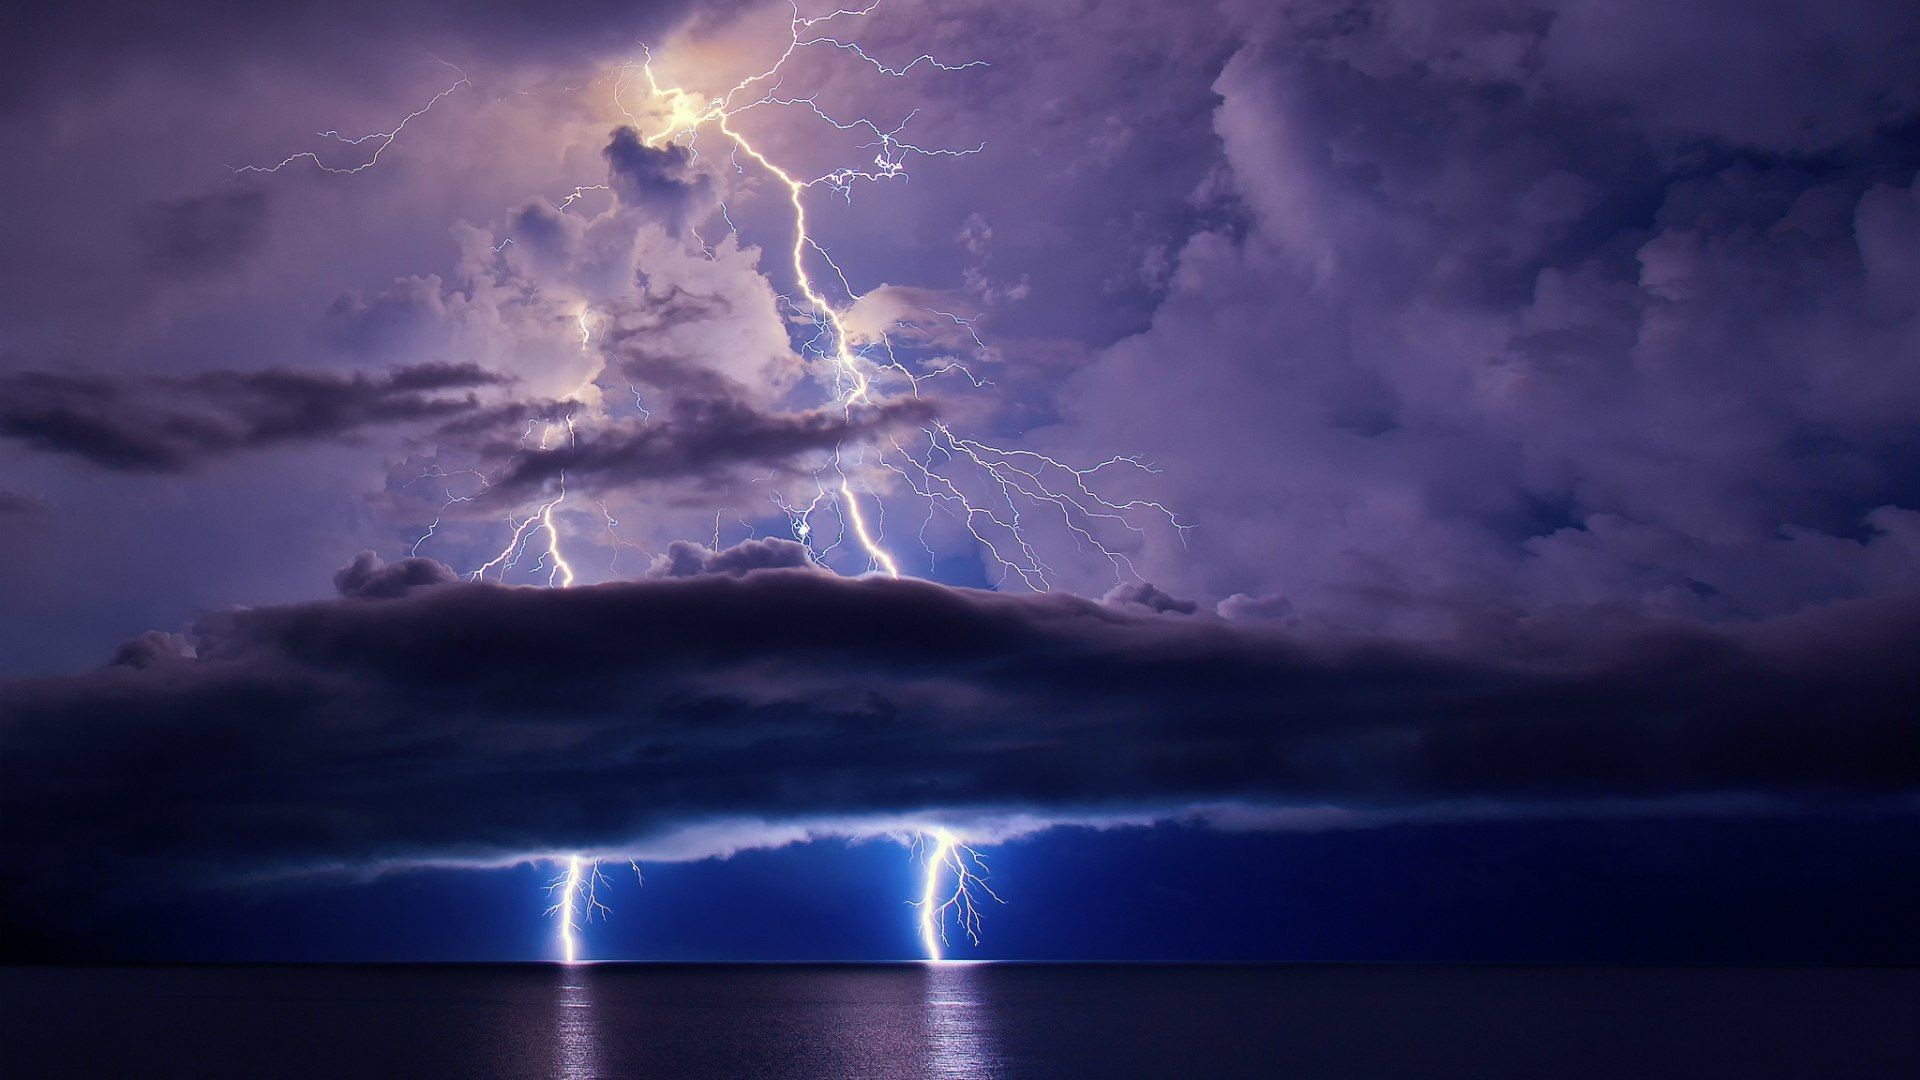 Res: 1920x1080, Thunderstorm Backgrounds 1920×1200 Thunderstorm Backgrounds (40 Wallpapers)  | Adorable Wallpapers